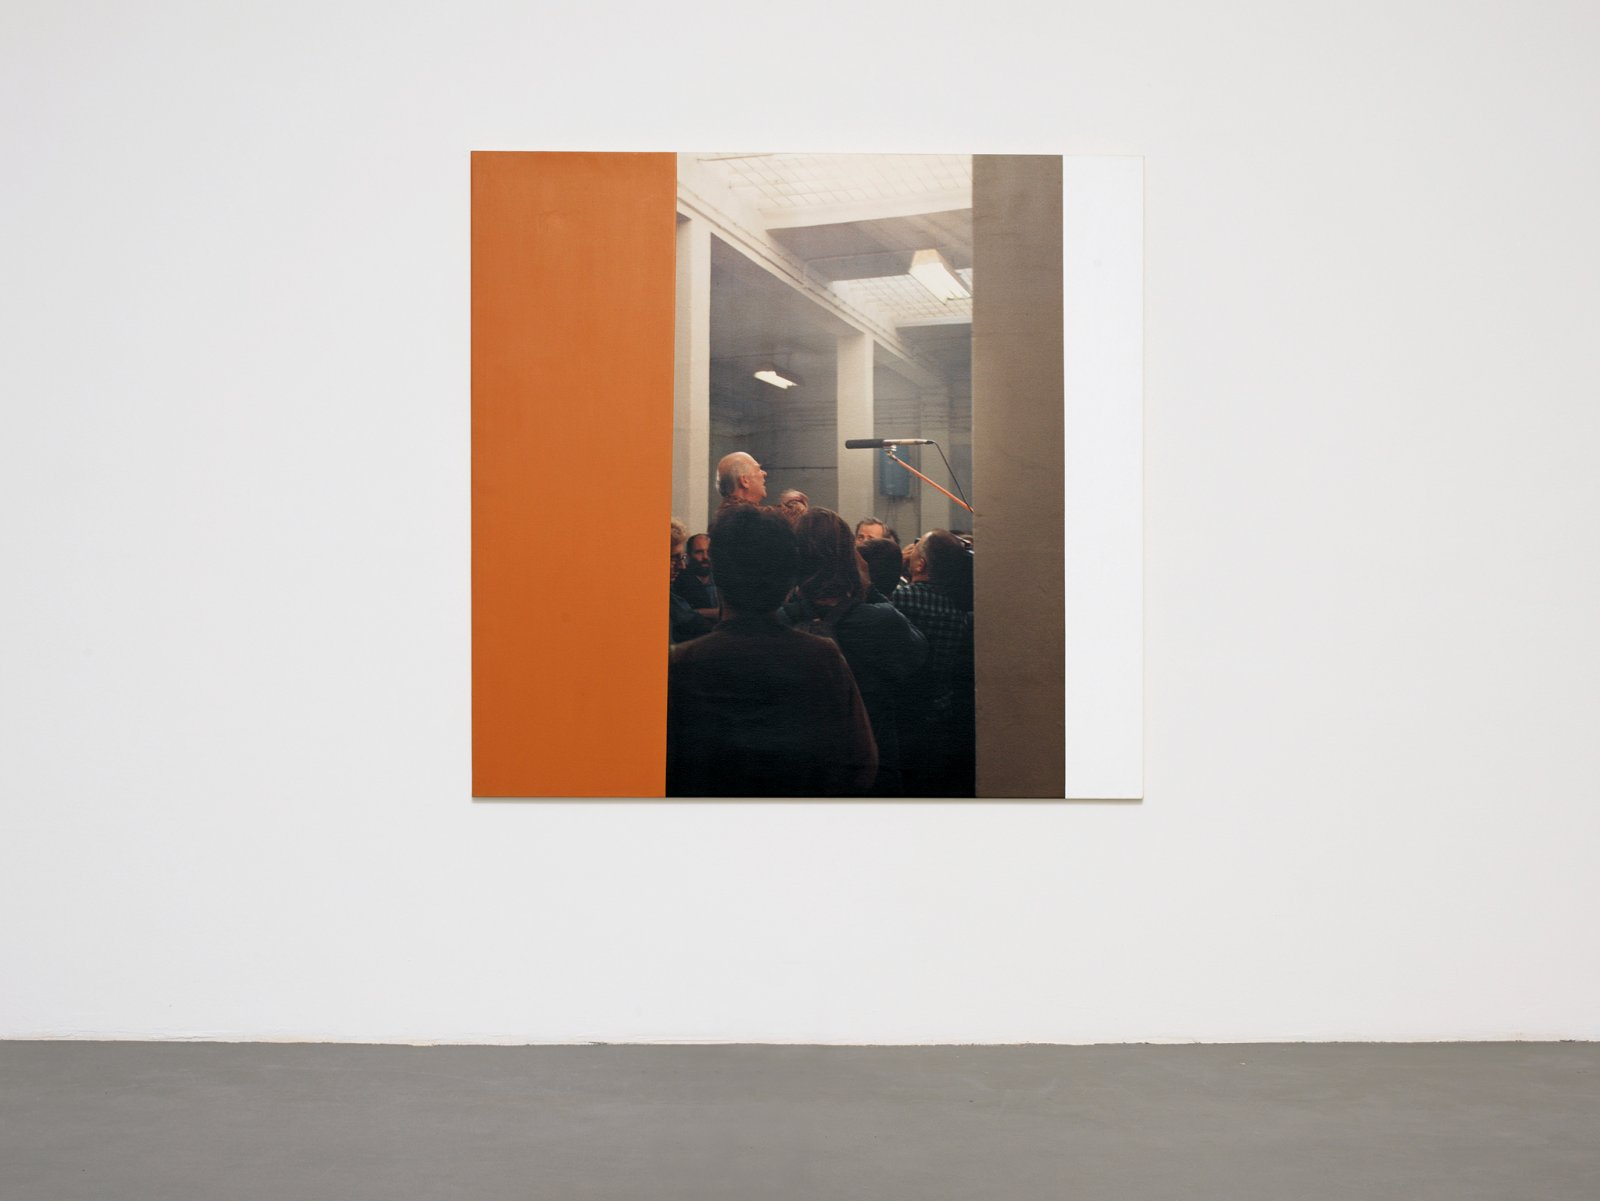 ​Ian Wallace, Emmett Williams Speaking at the Opening of the Artist's Museum Lodz, Poland, October 14 1990, 1990, photolaminate with acrylic on canvas, 59 x 62 in. (150 x 158 cm). Installation view, A Literature of Images, Witte de With, Rotterdam, 2008​ by Ian Wallace